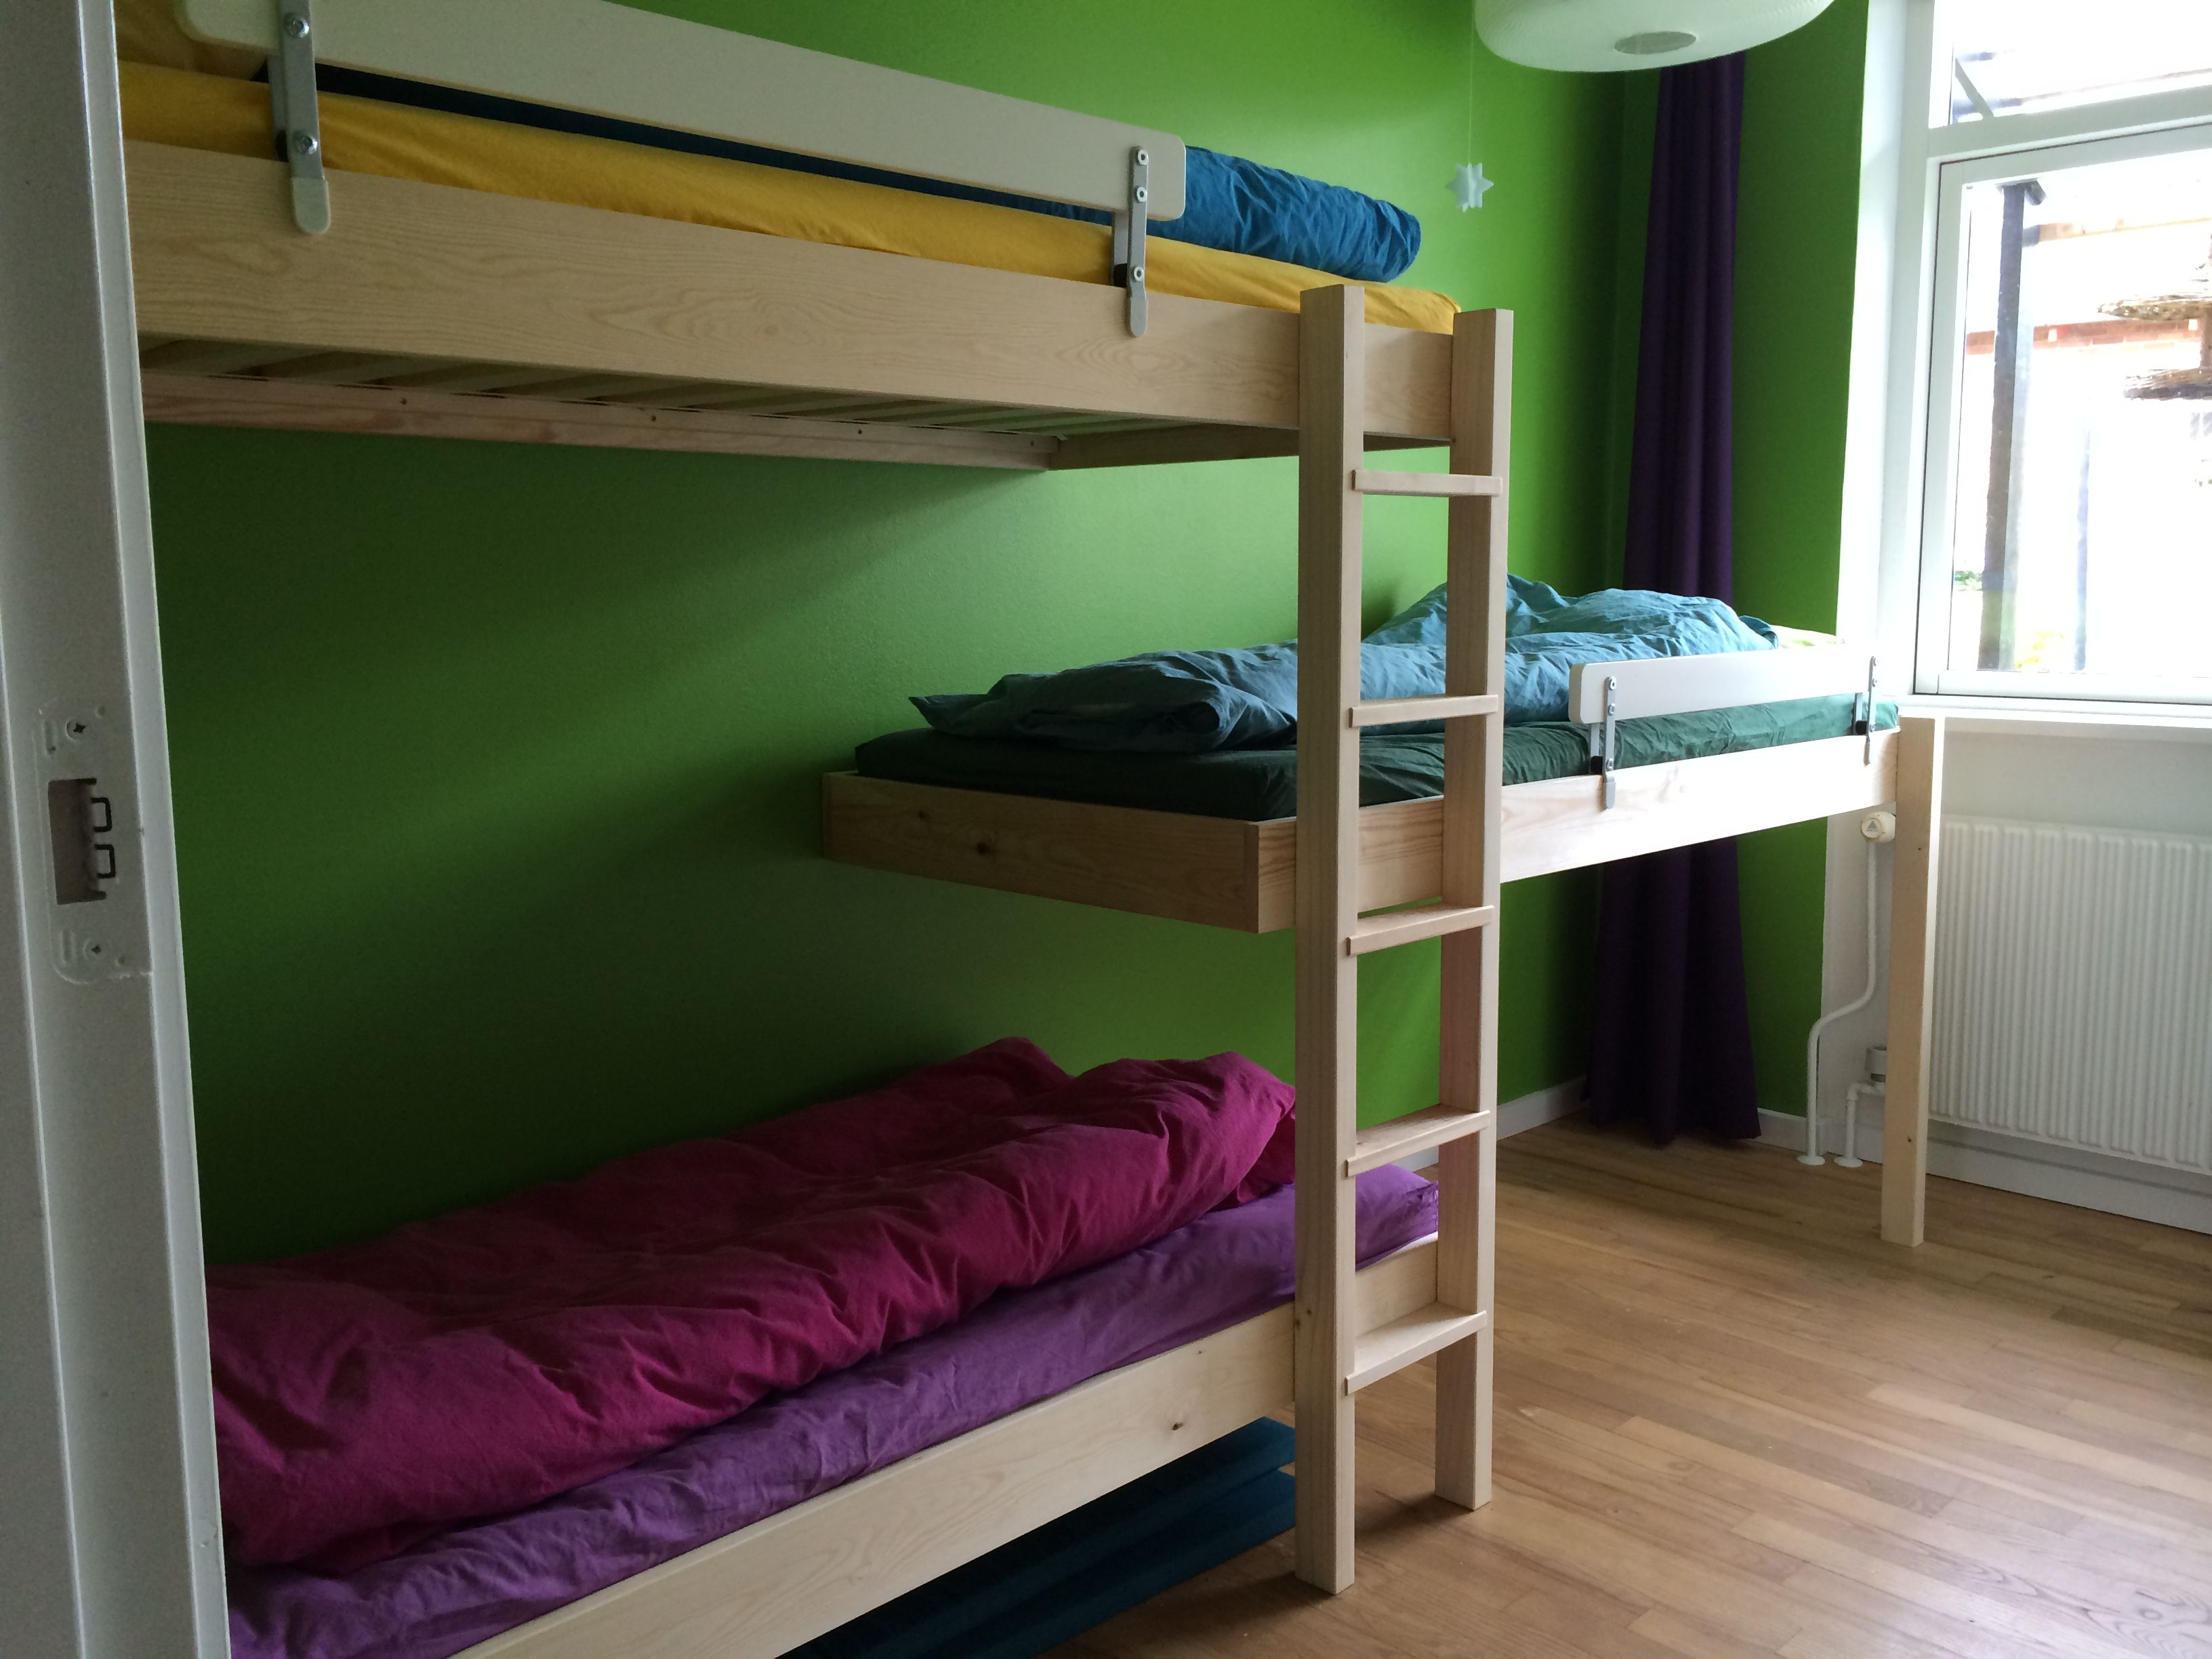 Triple Bunk Bed In Room With Low Ceiling Three Frames And Four